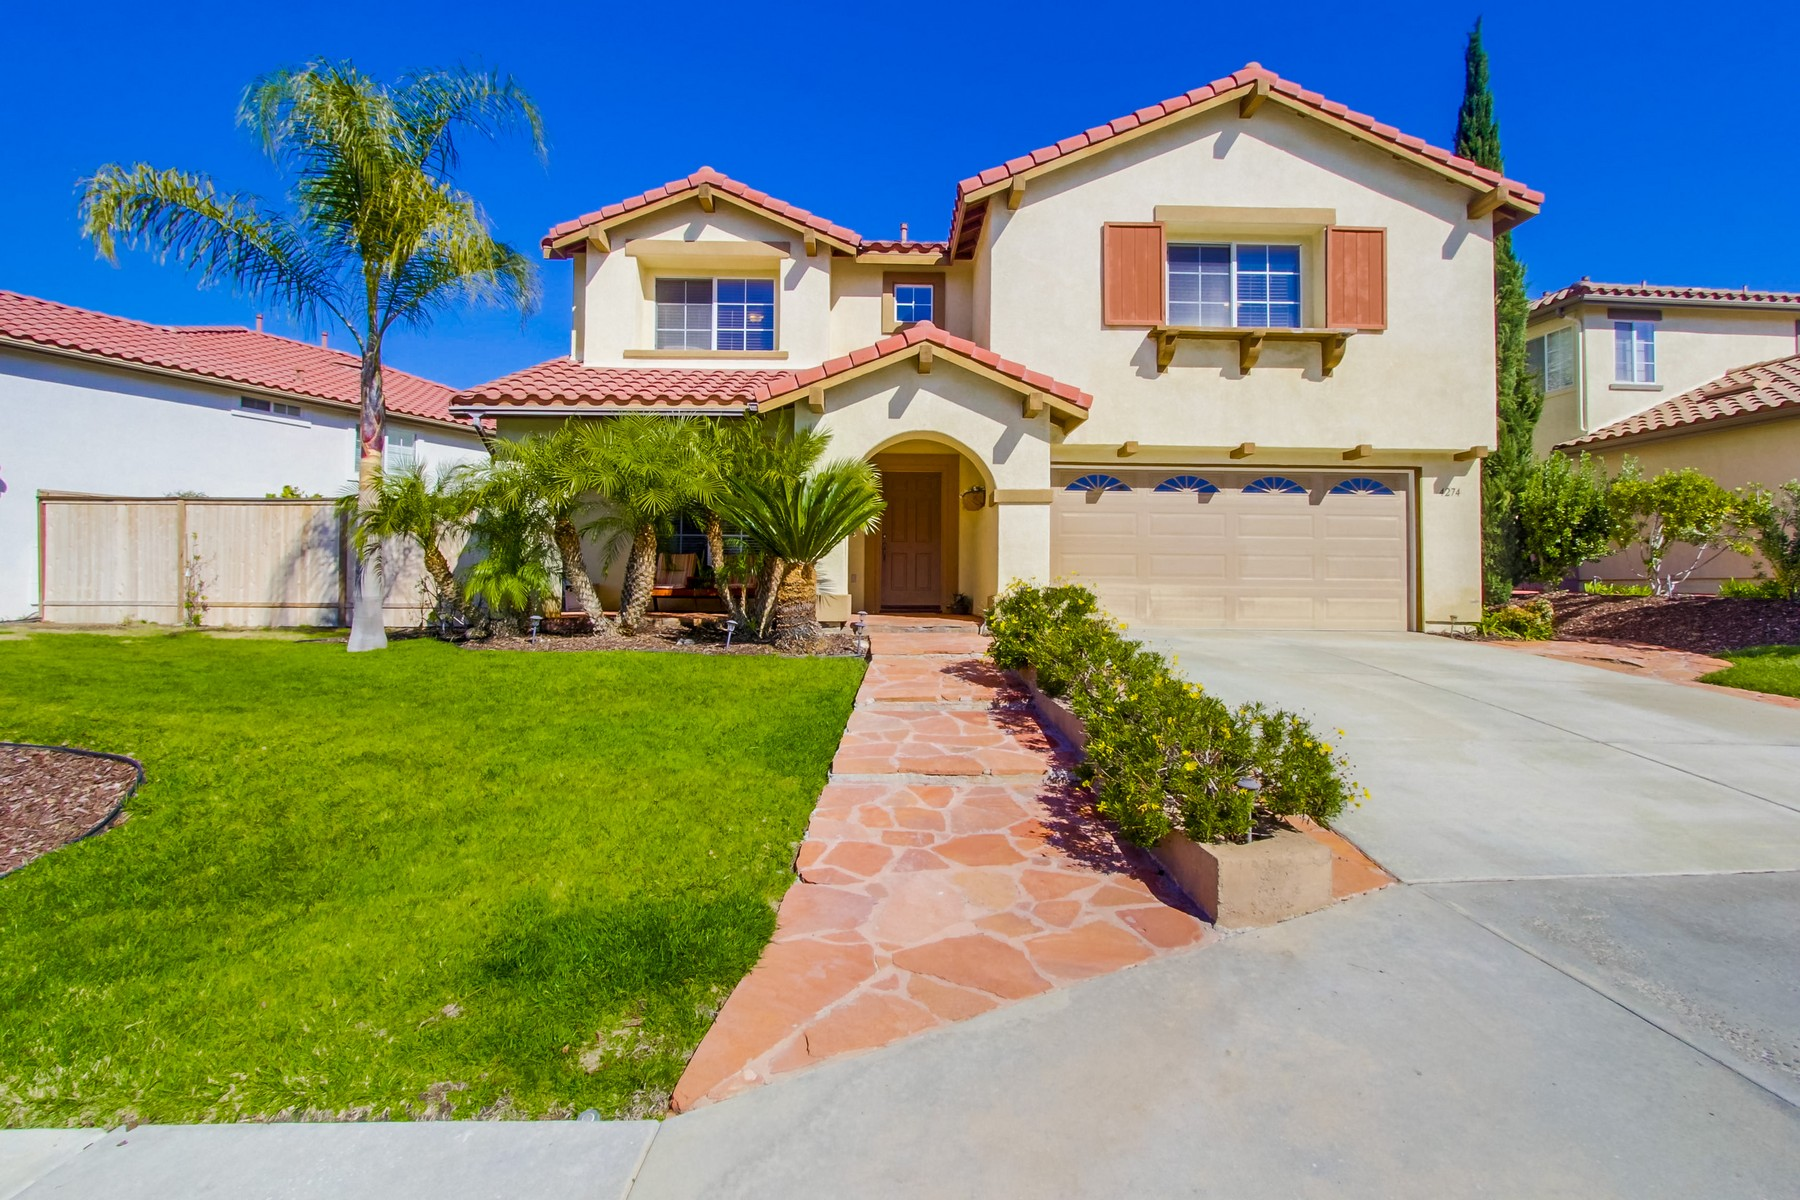 Single Family Home for Sale at 4274 Corte Verde Oceanside, California, 92057 United States